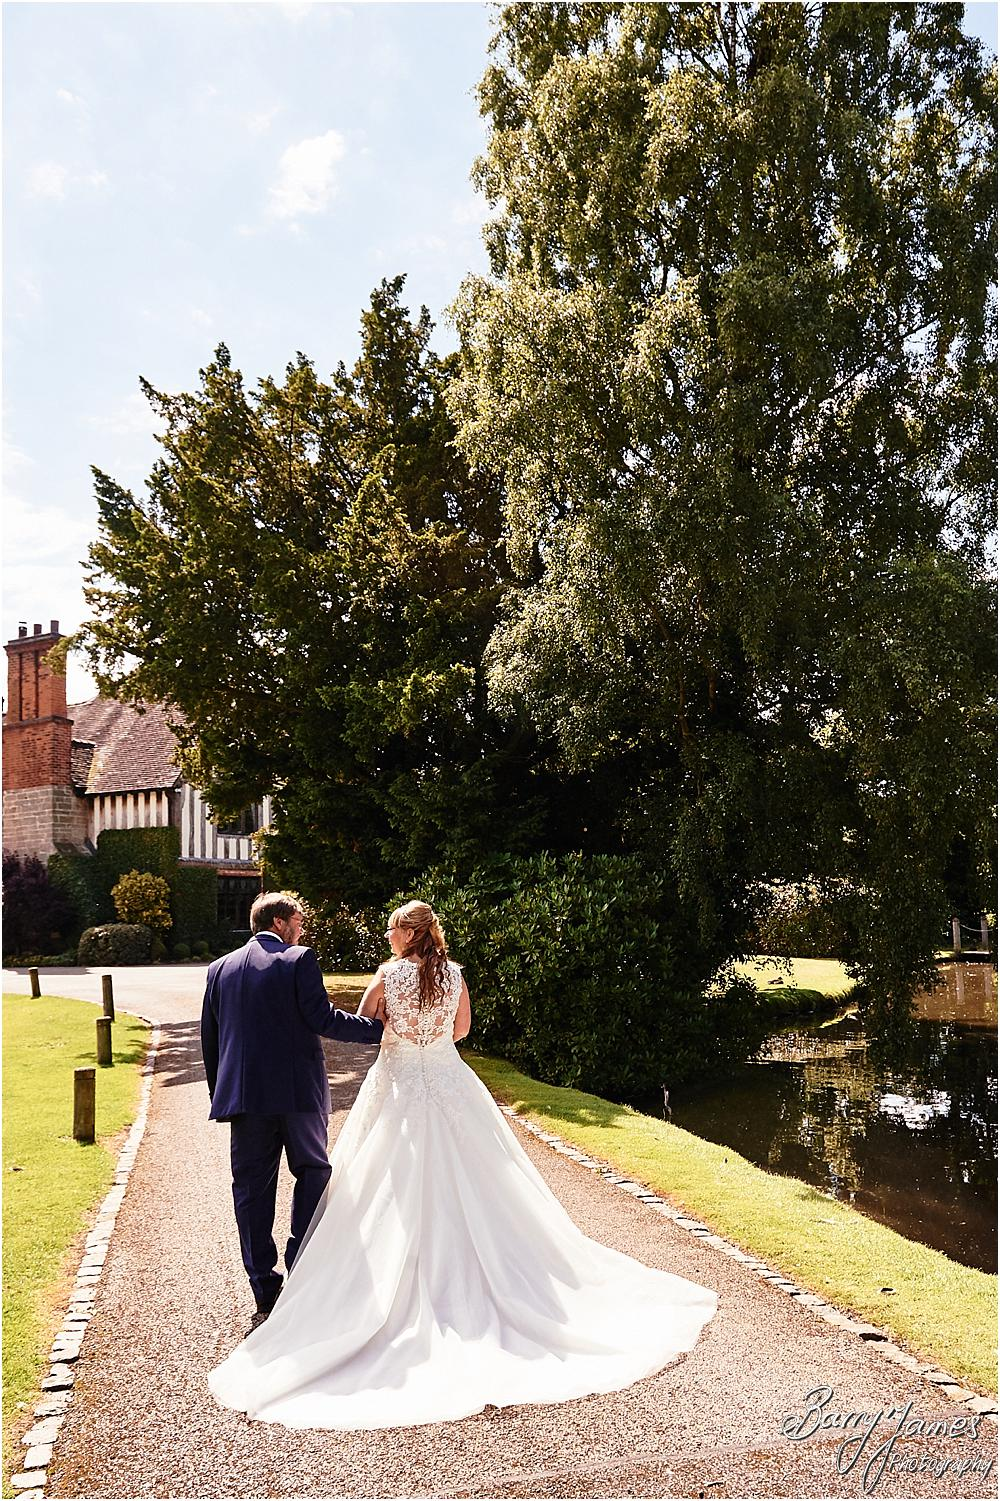 Creative natural portraits of the Bride and Groom with the perfect characterful setting and grounds at Acton Trussell by Stafford Wedding Photographer Barry James